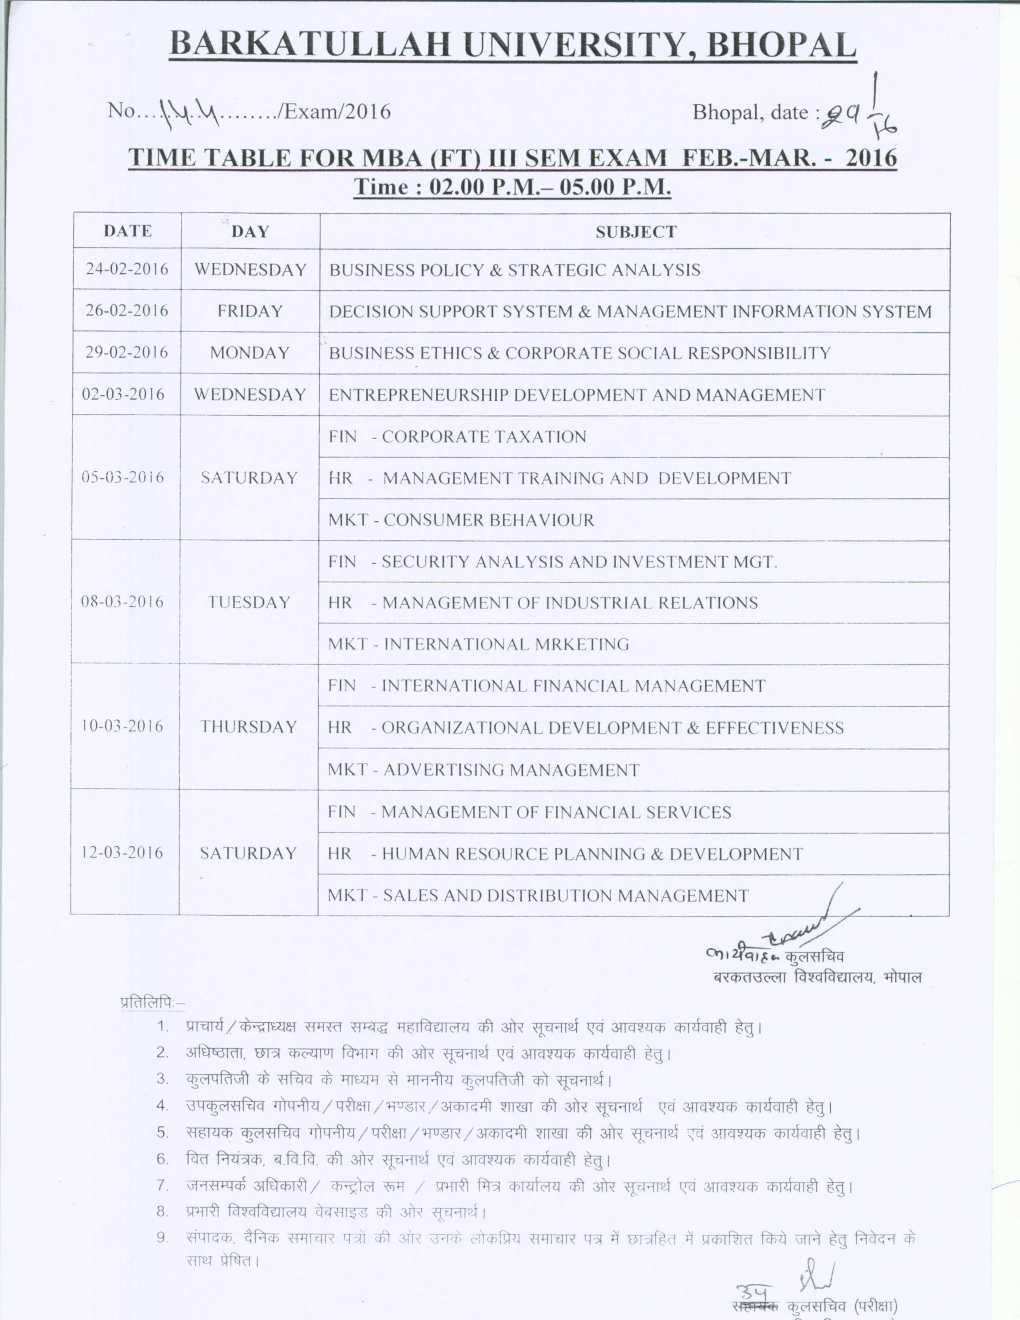 BU Bhopal MBA Time Table - 2017 2018 Student Forum